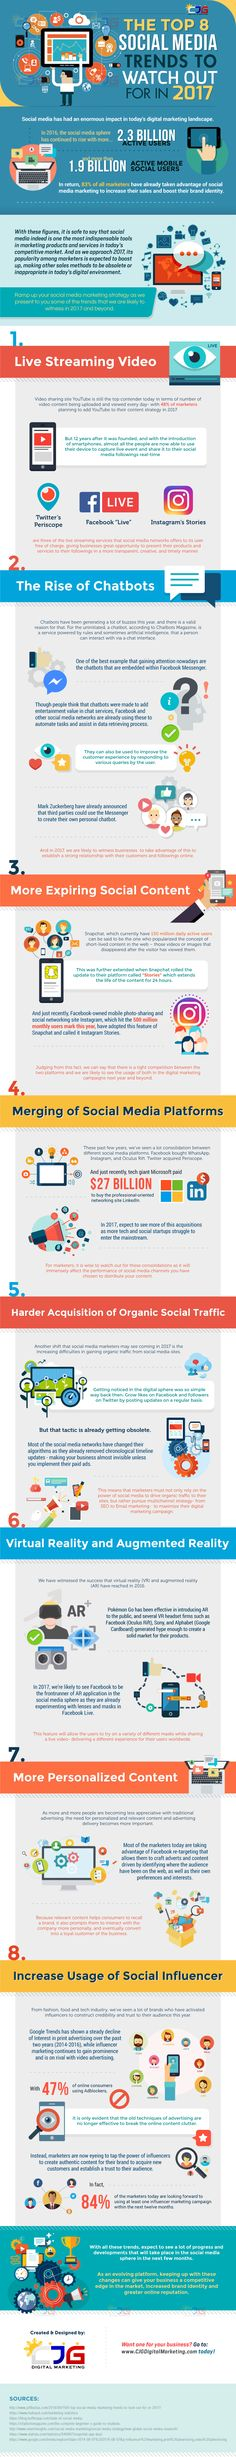 The Top 8 Hottest Social Media Marketing Trends in 2017 [Infographic] CJG Digital Marketing